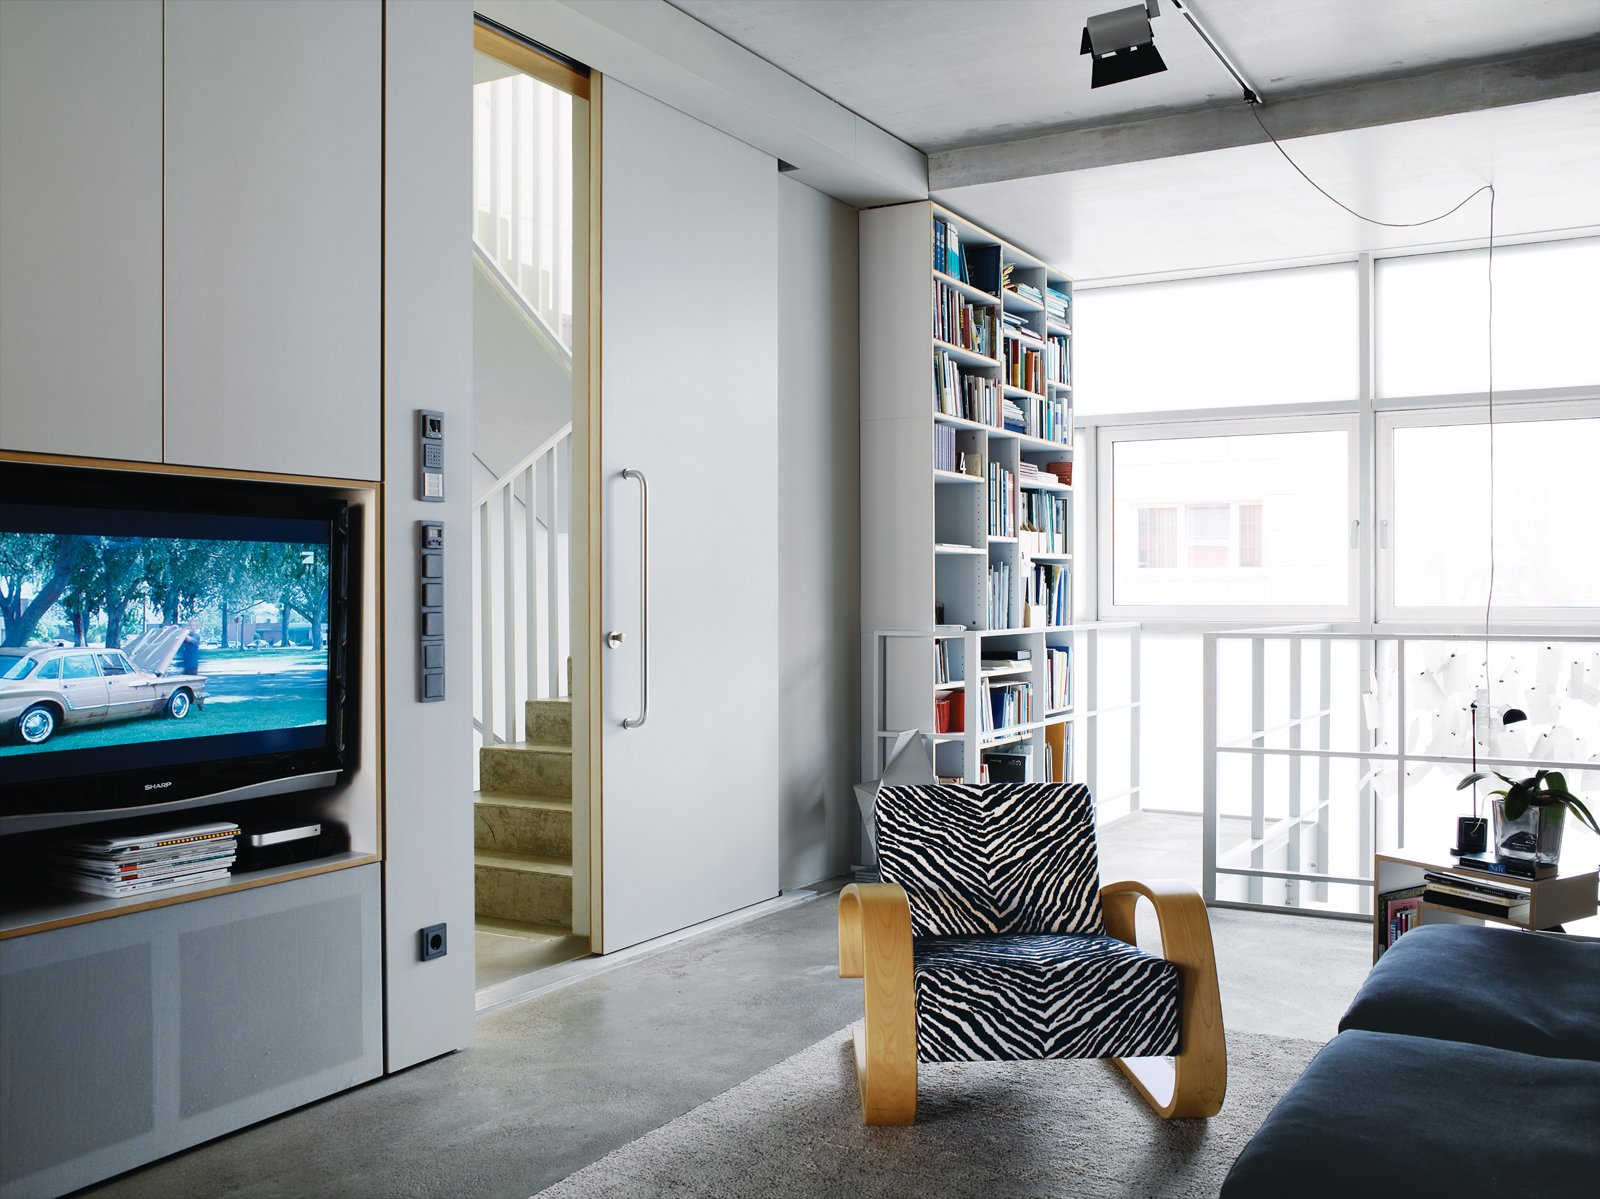 Very large doors, like the one leading from the living area to the stairwell, add to the sense of space. Tagged: Living Room, Chair, Concrete Floor, and Bookcase.  Photo 13 of 16 in A Rational Approach